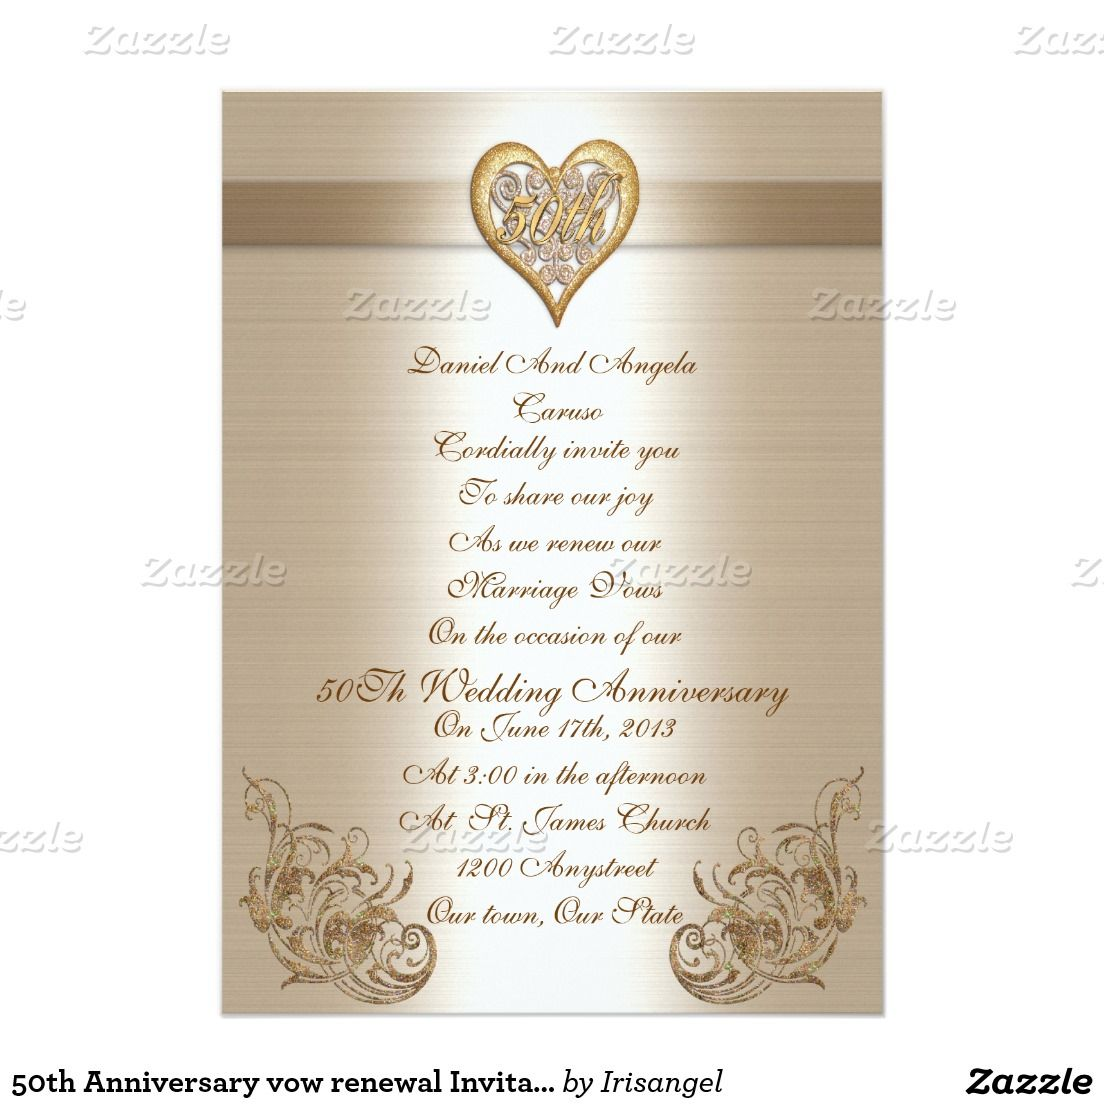 50th Anniversary vow renewal Invitation – Renewal of Vows Invitation Cards